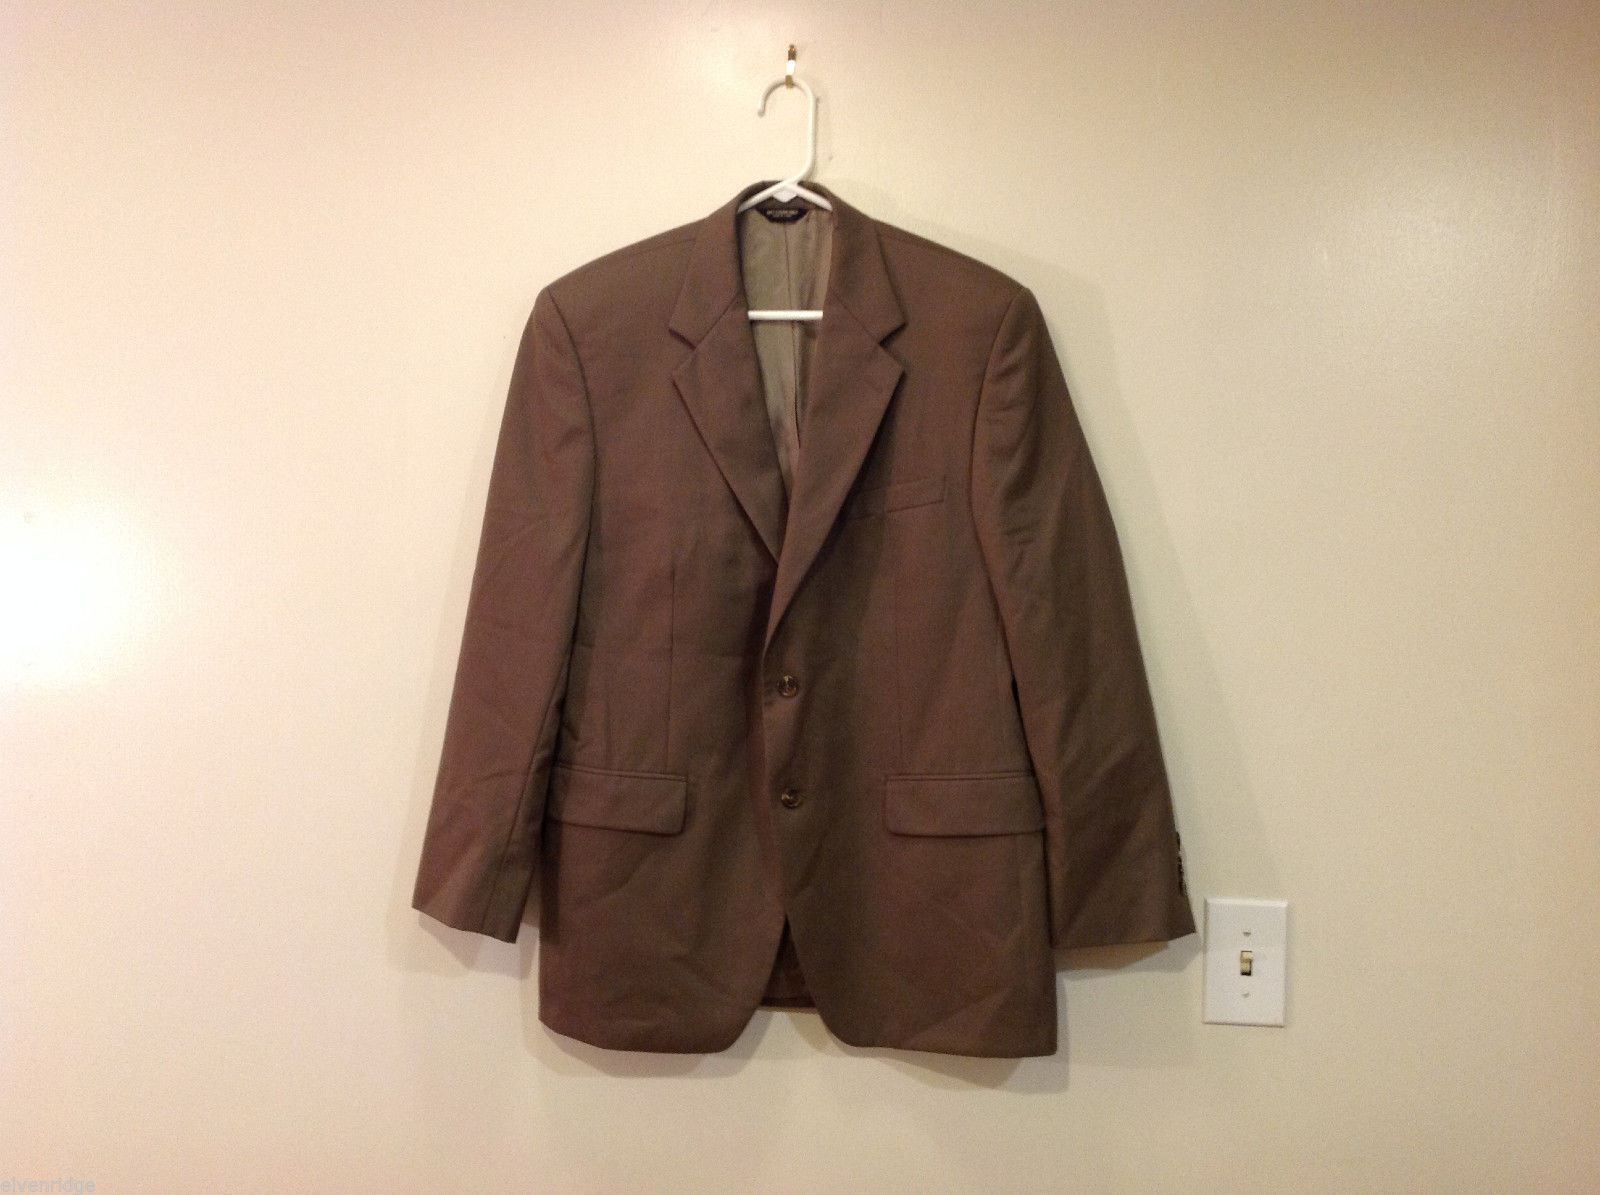 Chaps Two Buttons Brown wit Gray Hue 100% Wool Suit Jacket, Size 40R